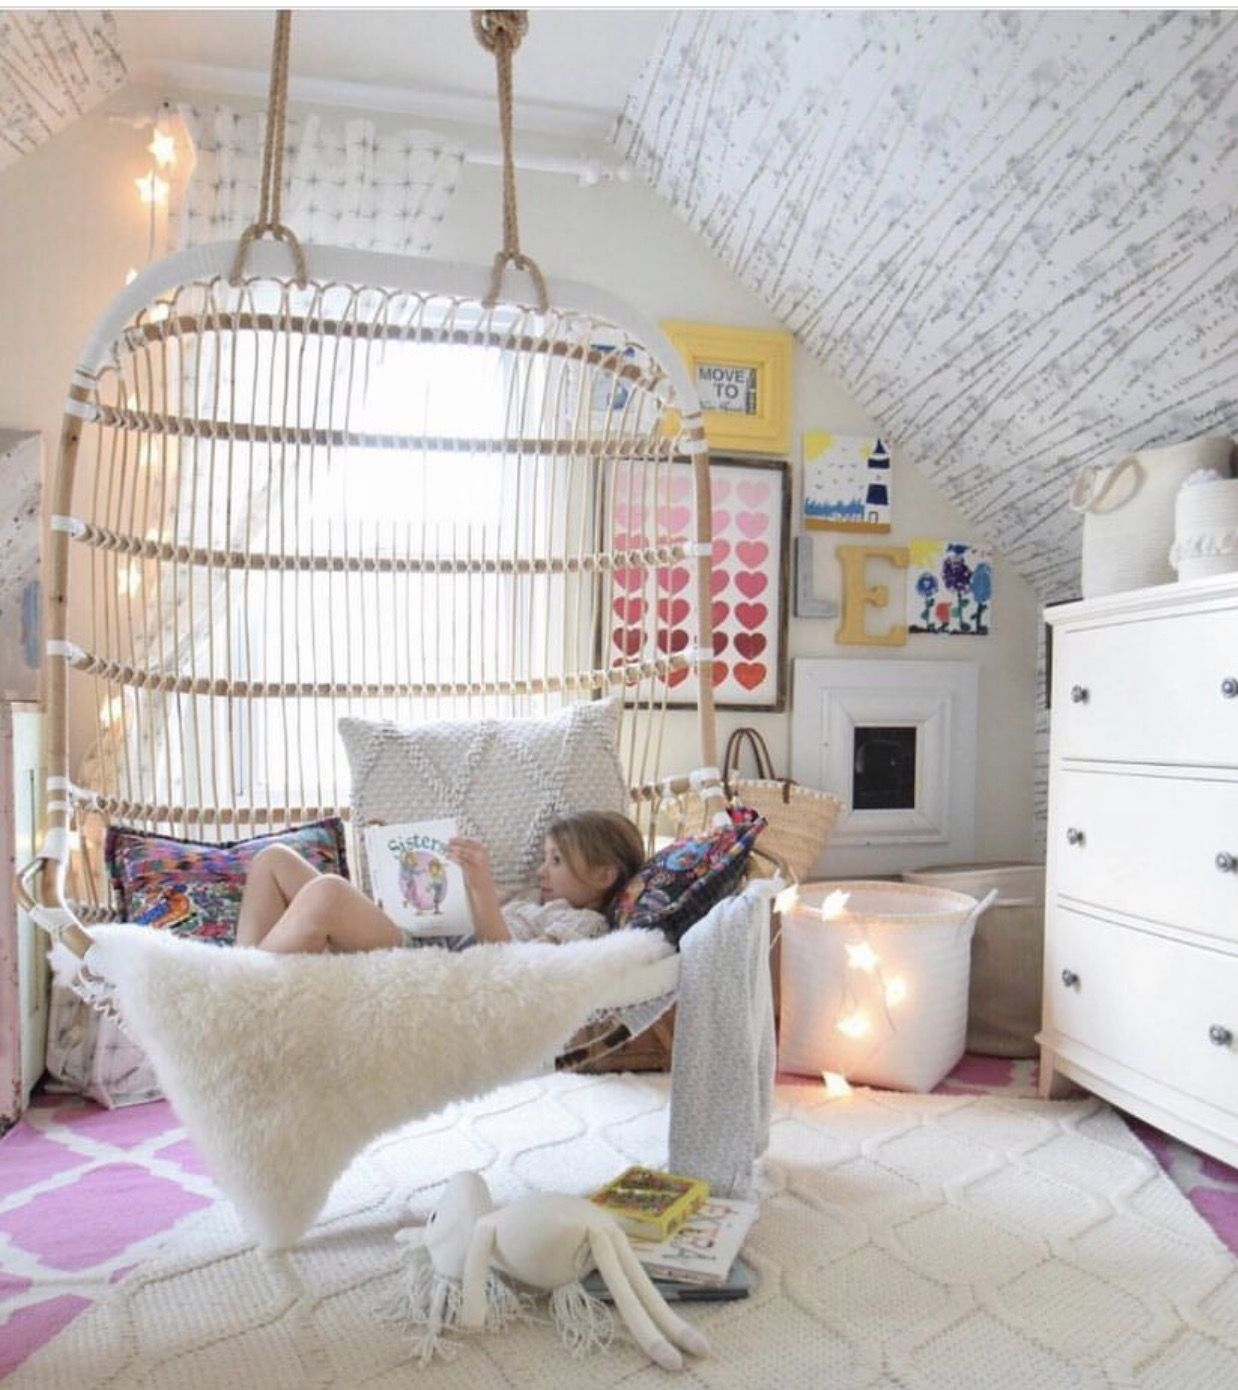 Diy Bedroom Ideas For Decorating The Kid S Bedroom To Be: Pin On Boys Rooms